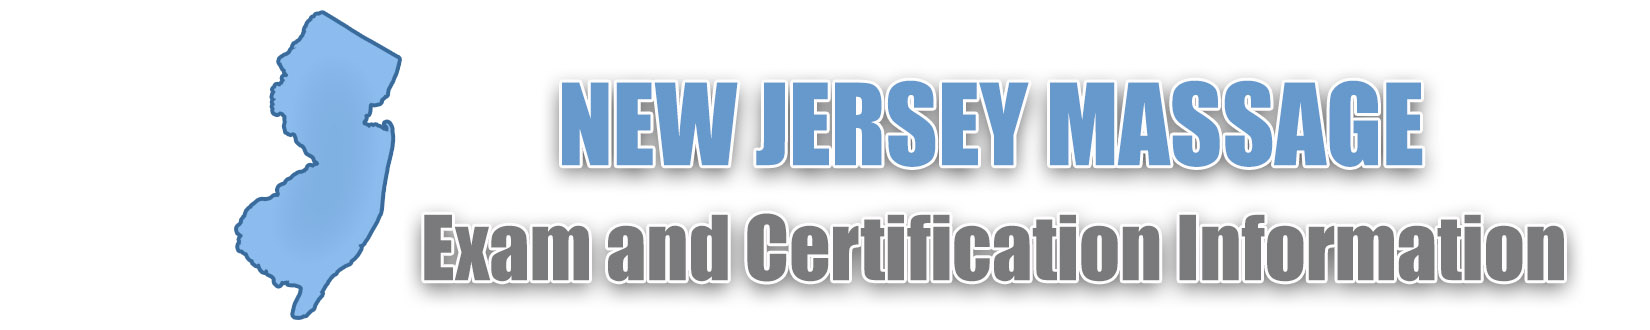 New Jersey 2019 Massage Therapy License and Board Certification